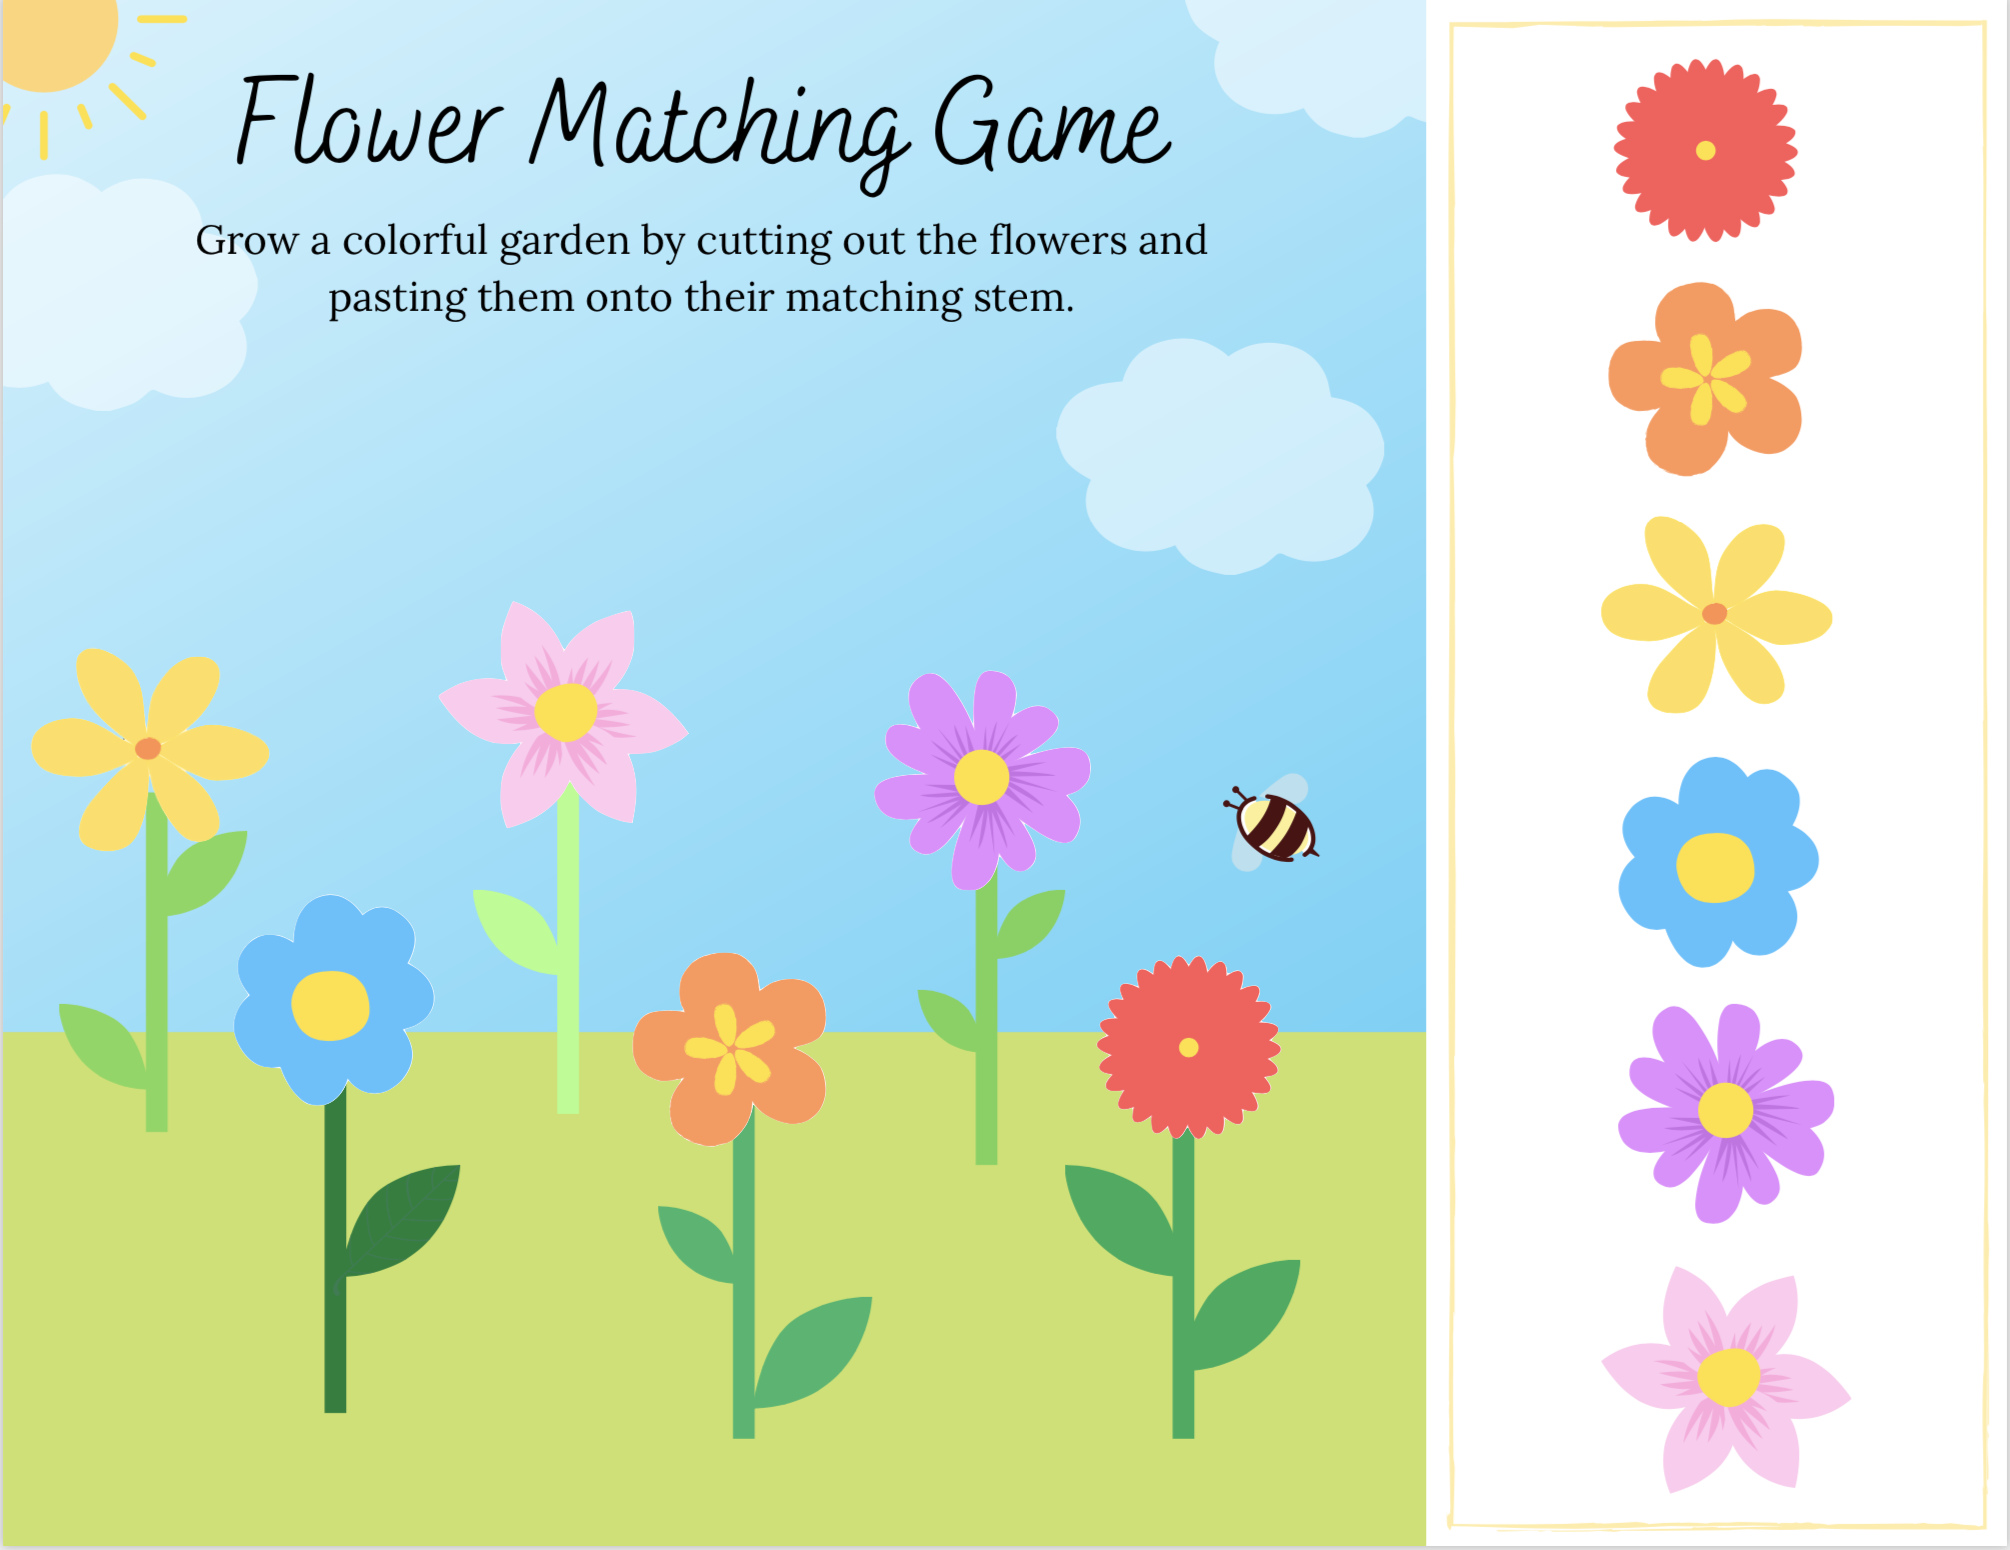 Poppy & Posie's Flower Matching Game - The Blossom Shoppe